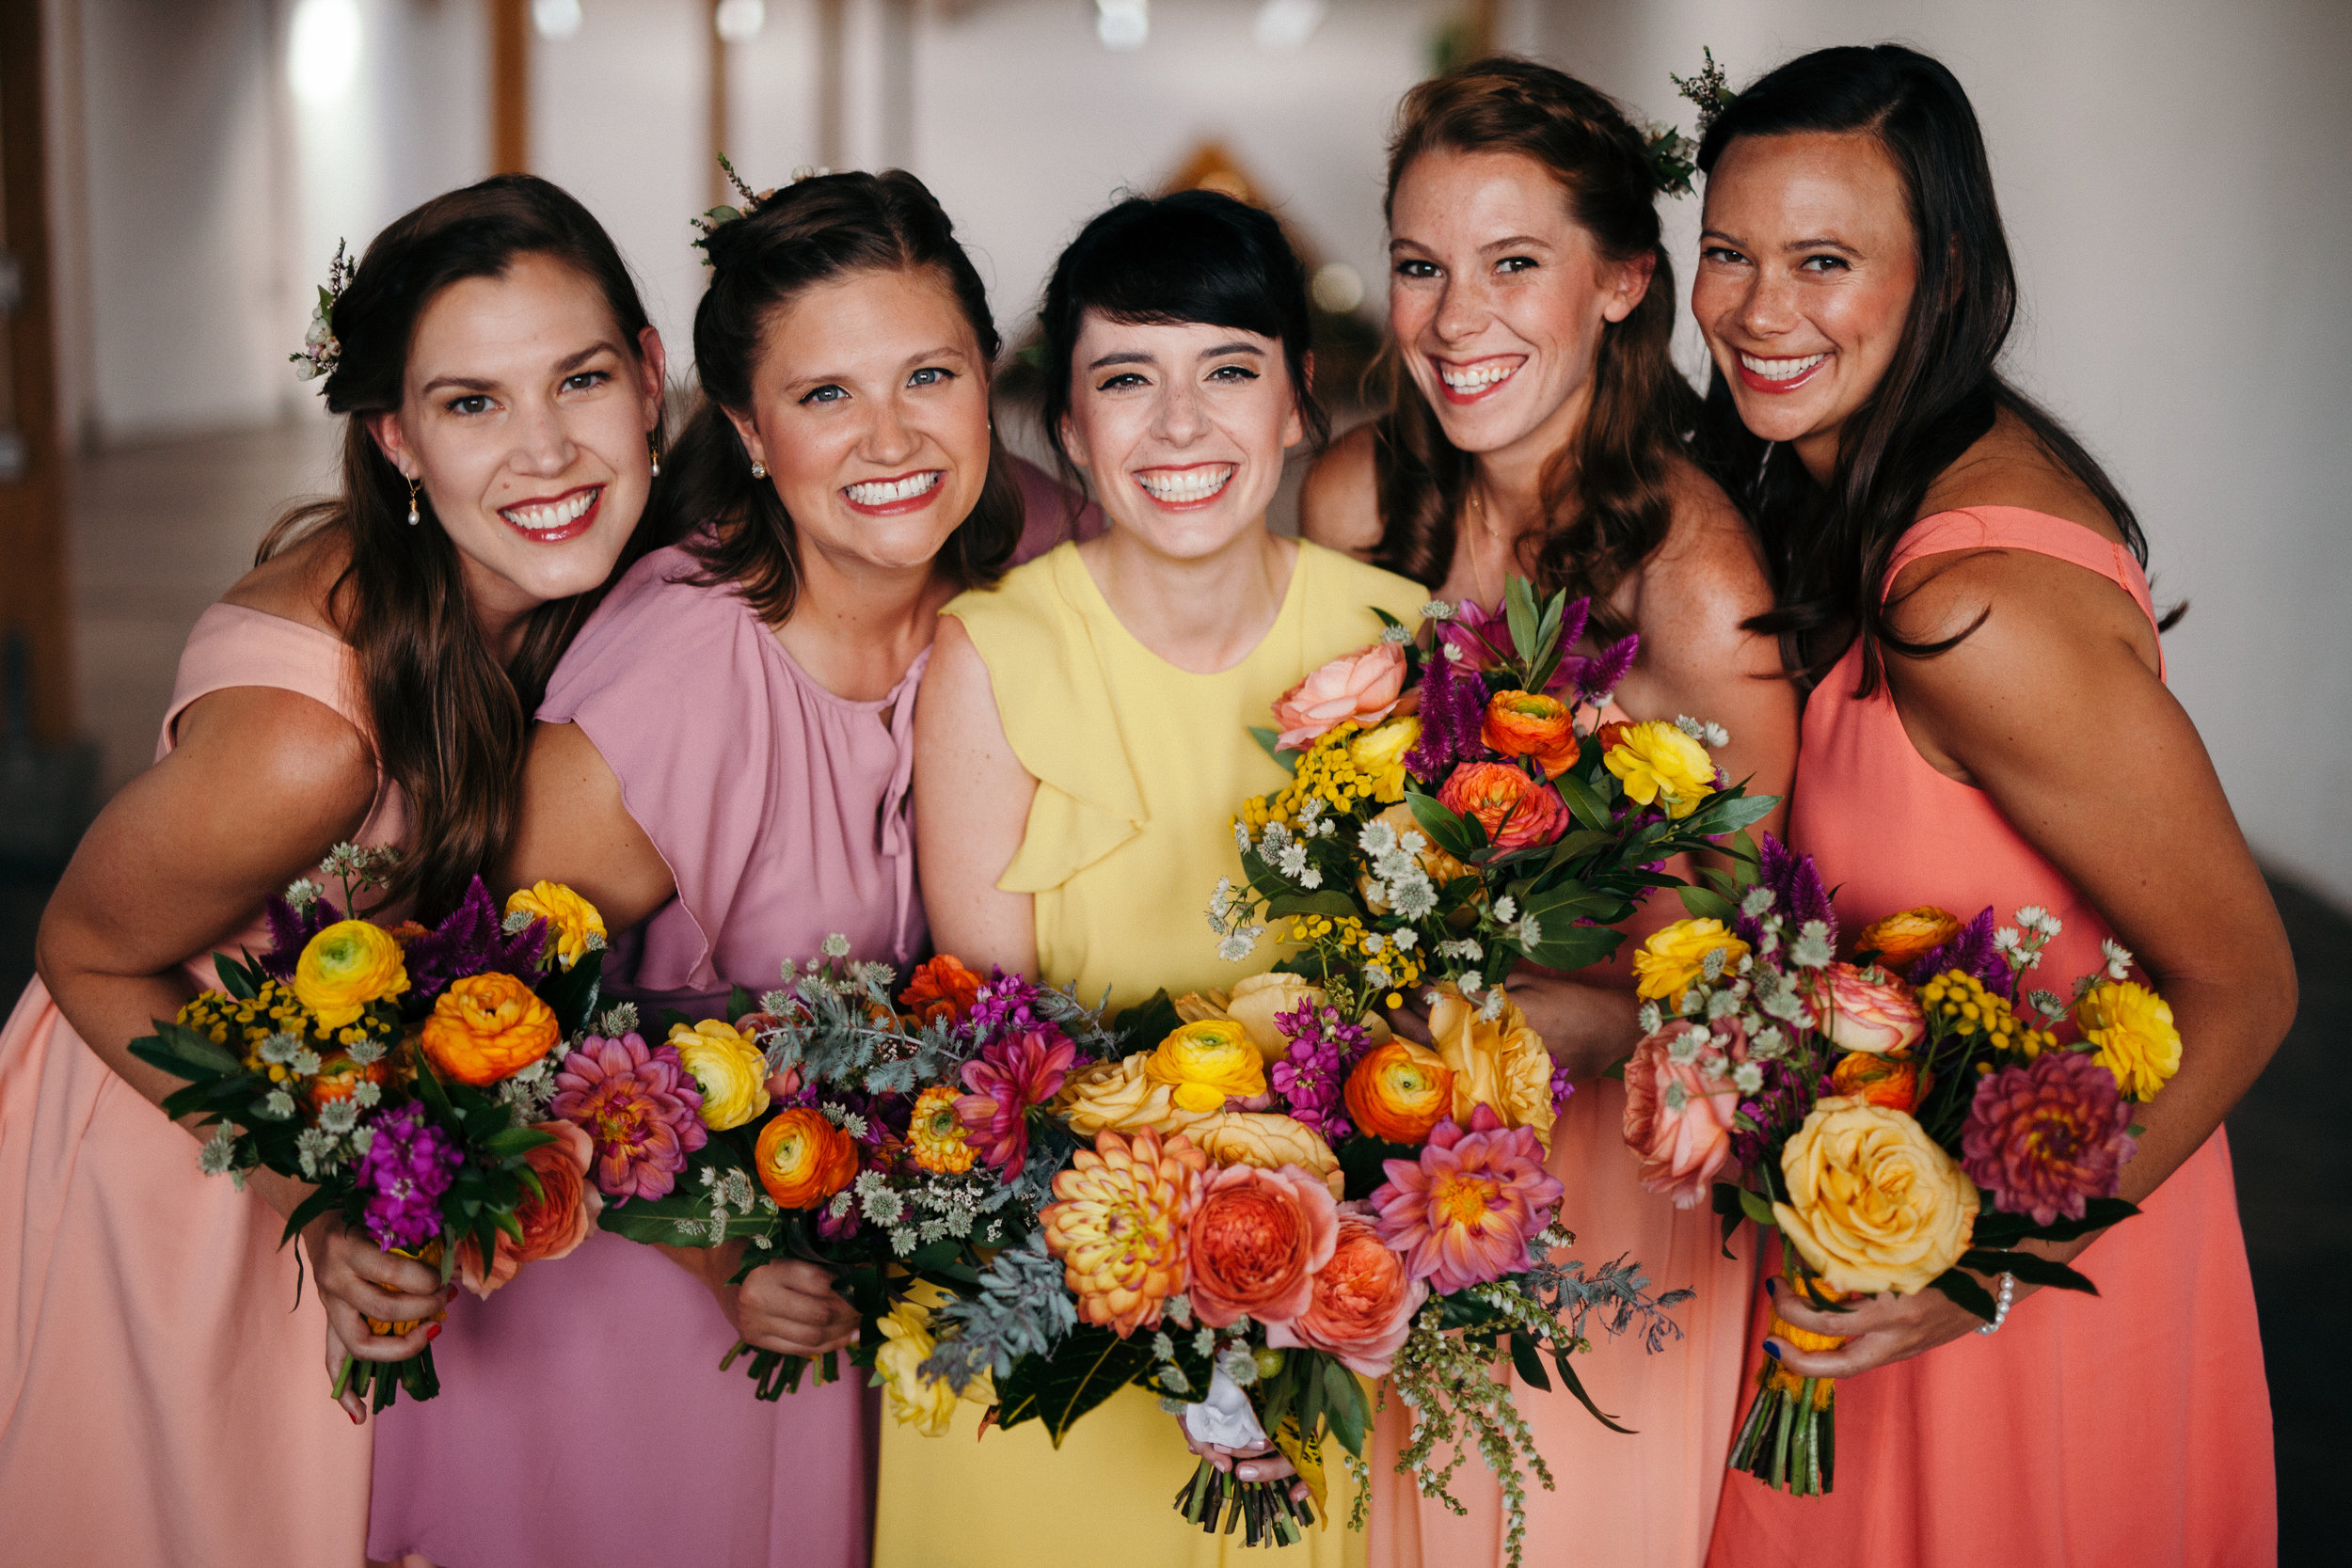 Flowers by Lace and Lilies, colorful bouquets, bridesmaid dresses, bridal bouquet, bridesmaid bouquets, colorado wedding, mountain wedding, coral wedding flowers, peach and yellow